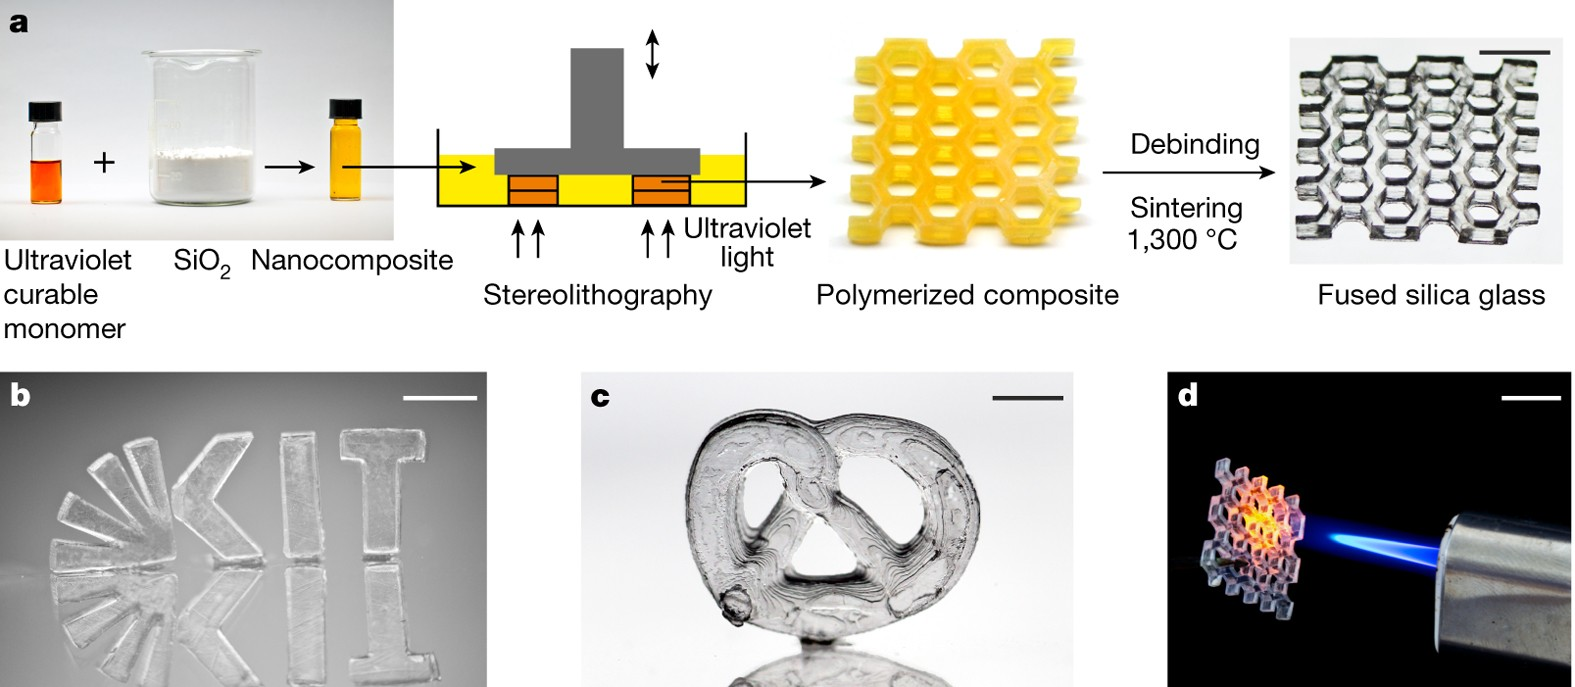 Three-dimensional printing of transparent fused silica glass